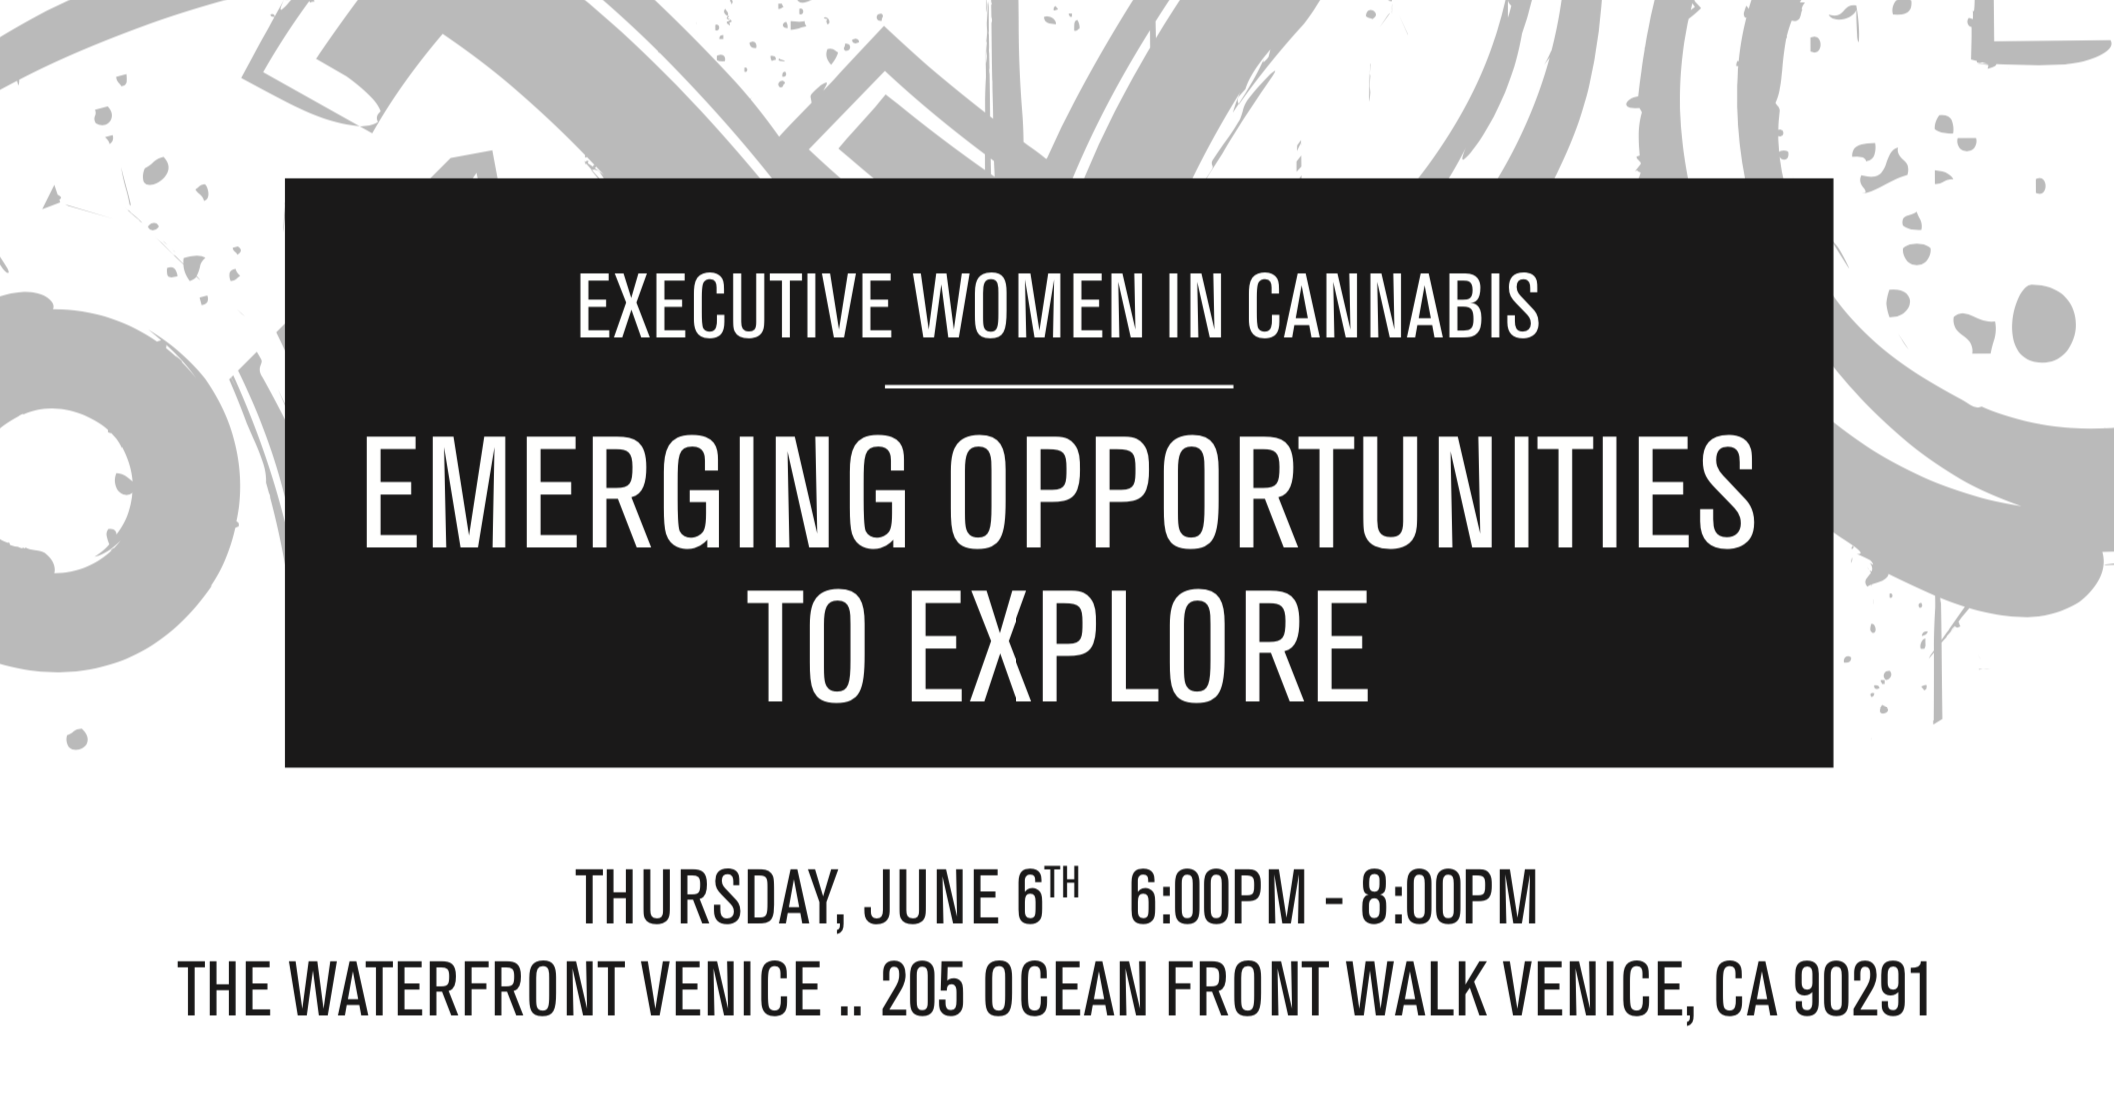 Executive Women in Cannabis Event - Emerging Opportunities to Explore